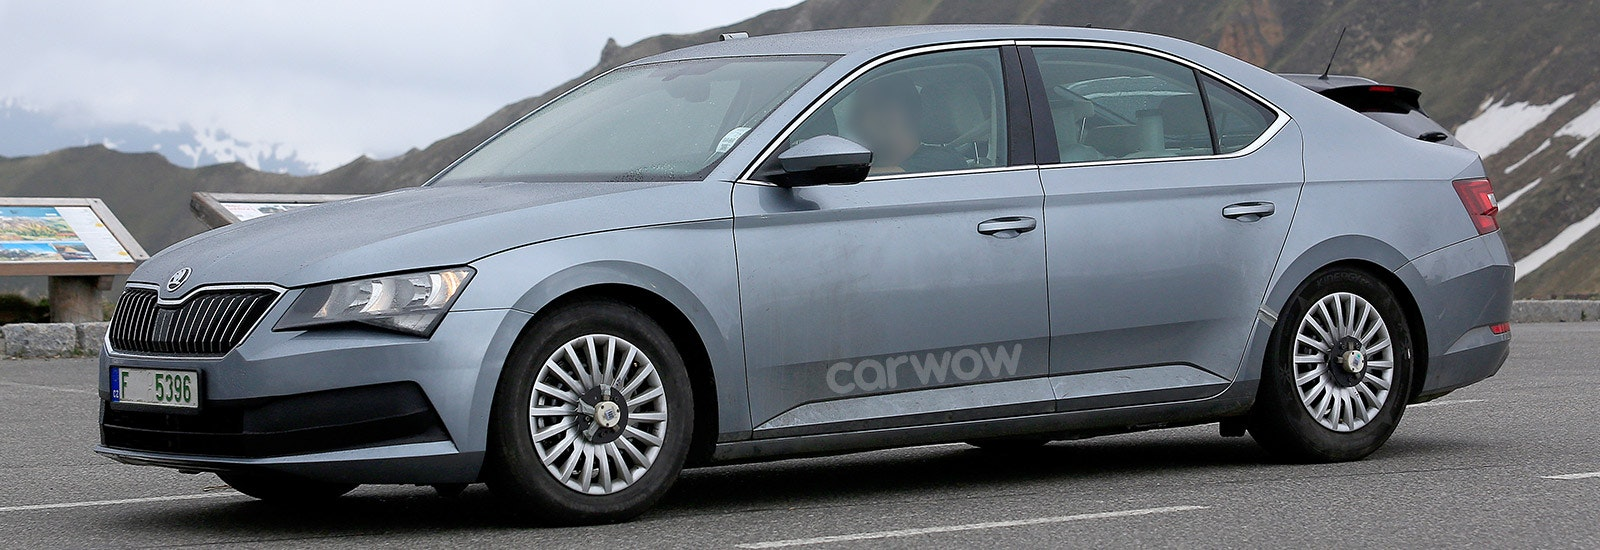 Skoda Superb Facelift 2019 >> 2019 Skoda Superb facelift price, specs, release date | carwow